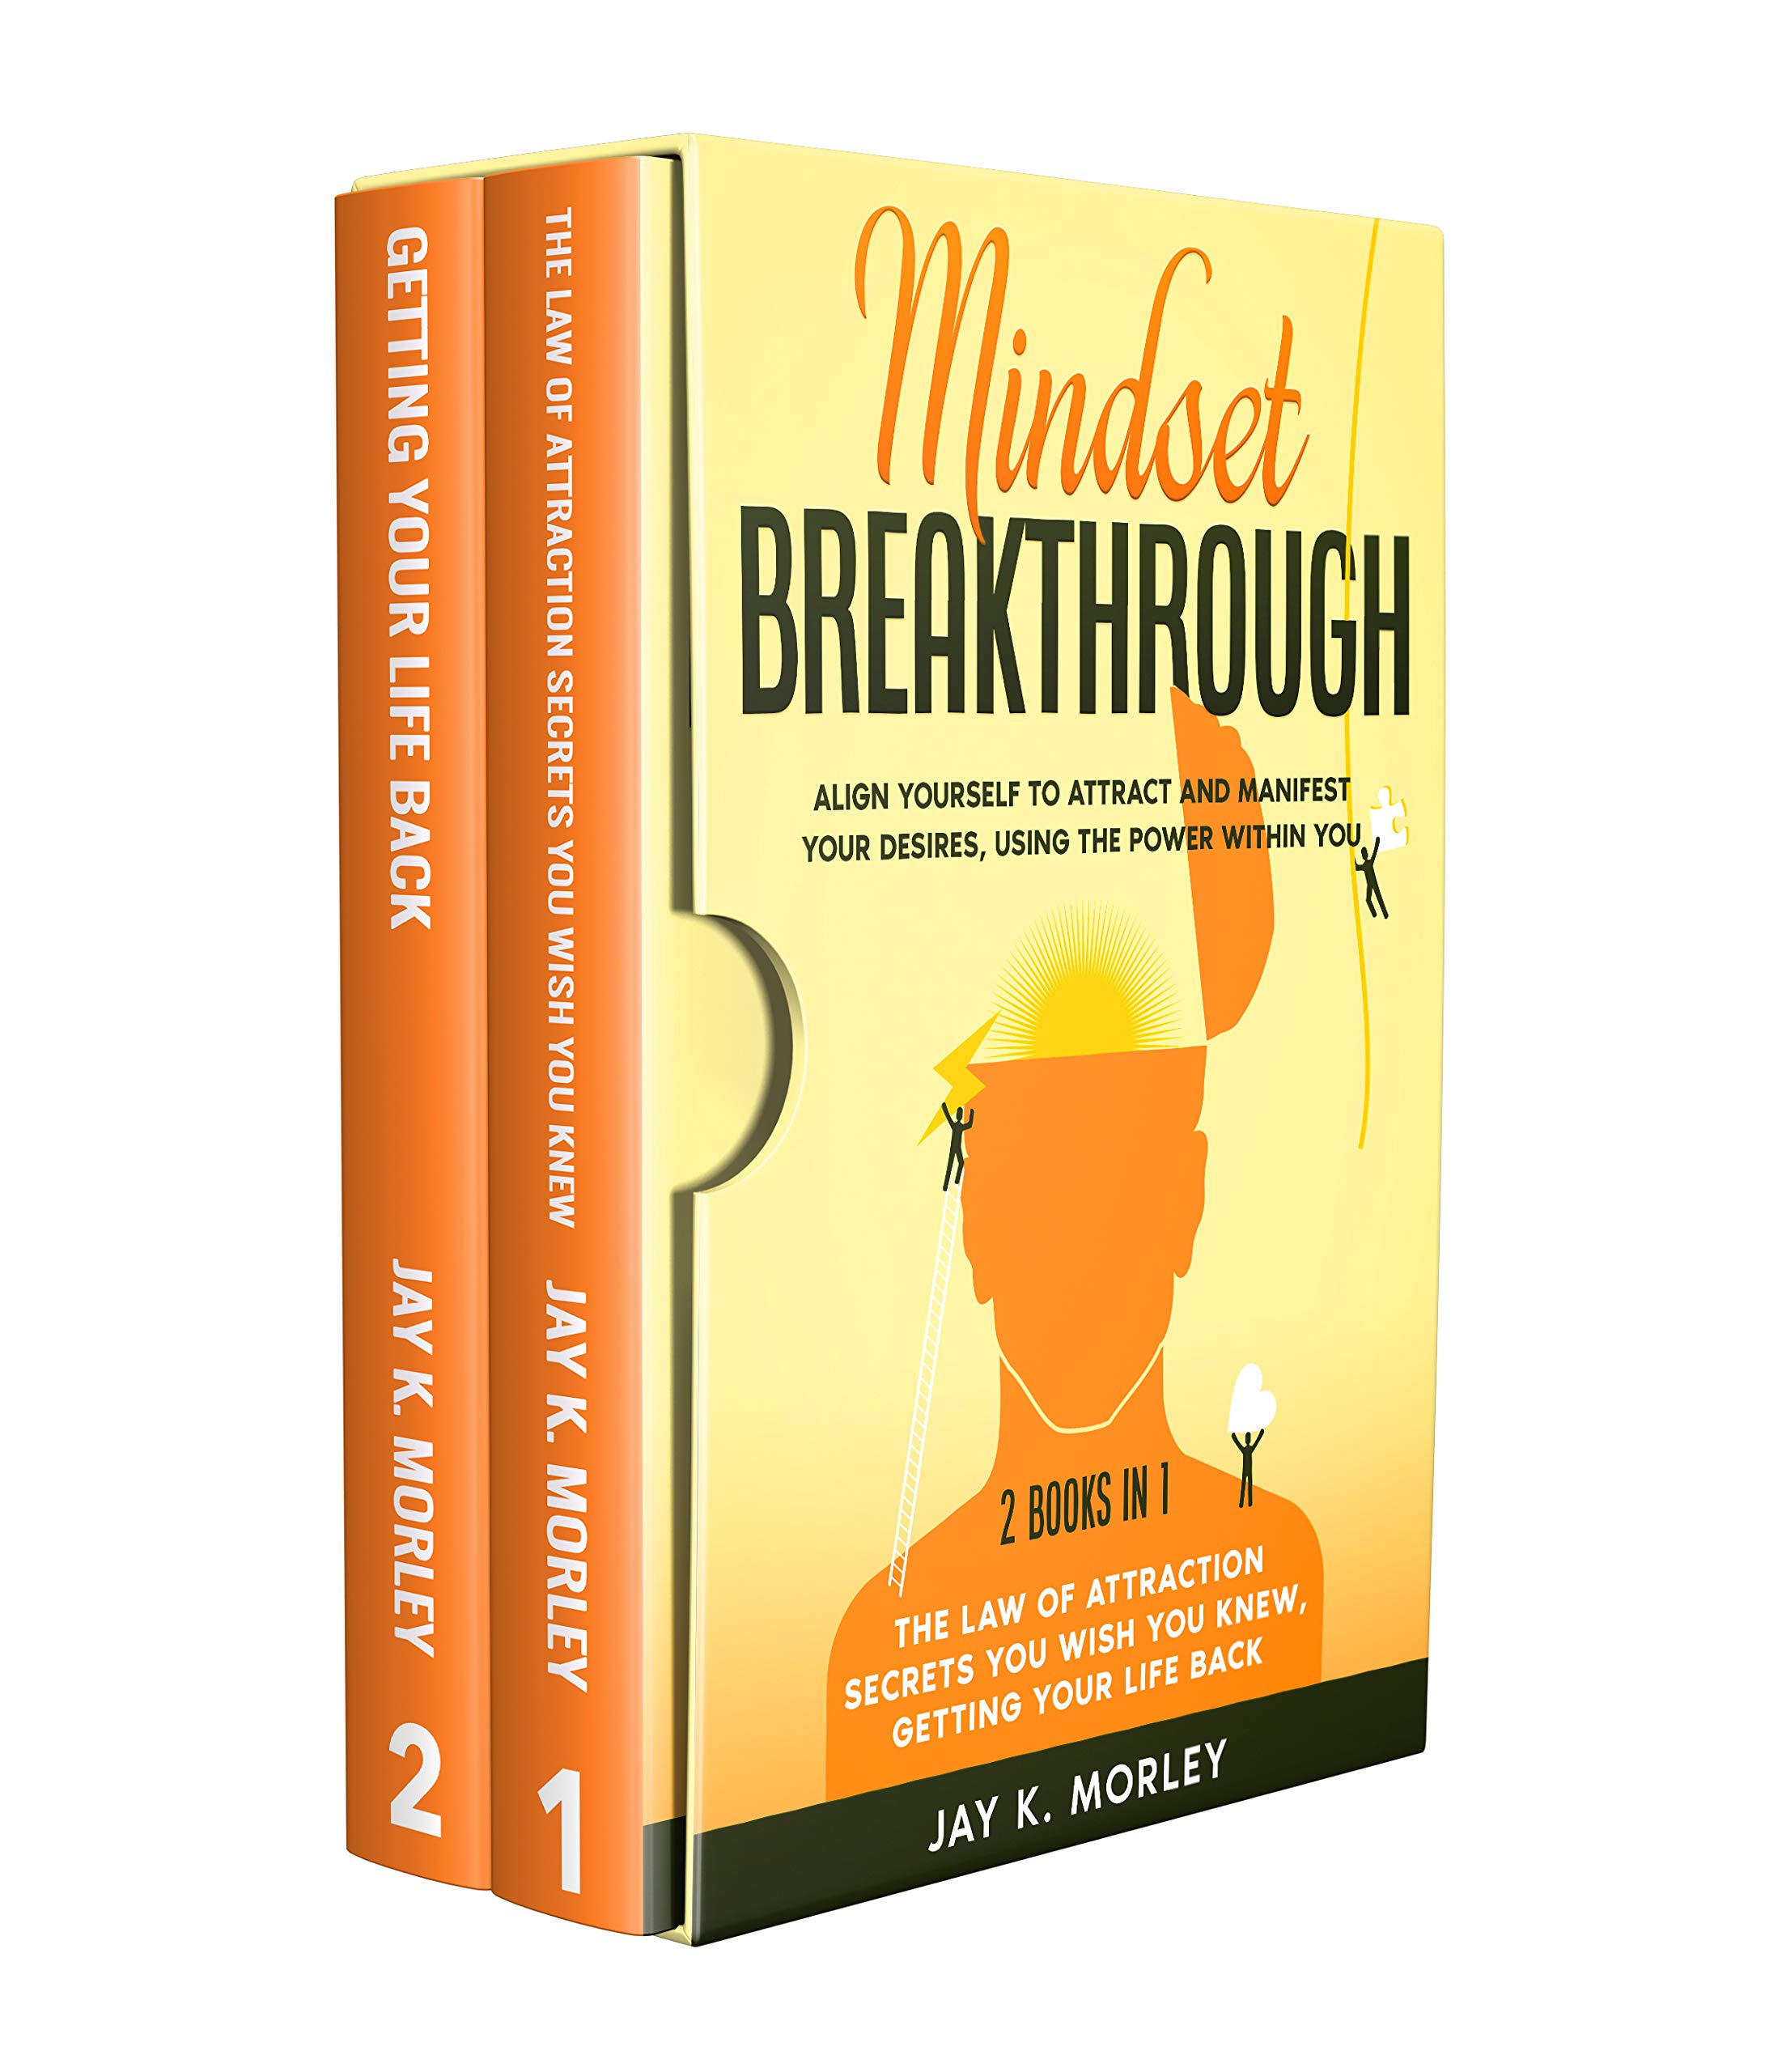 MINDSET BREAKTHROUGH: Align Yourself to Attract and Manifest Your Desires, Using the Power Within You: 2 Books in 1: The Law of Attraction You Wish You Knew, Getting Your Life Back